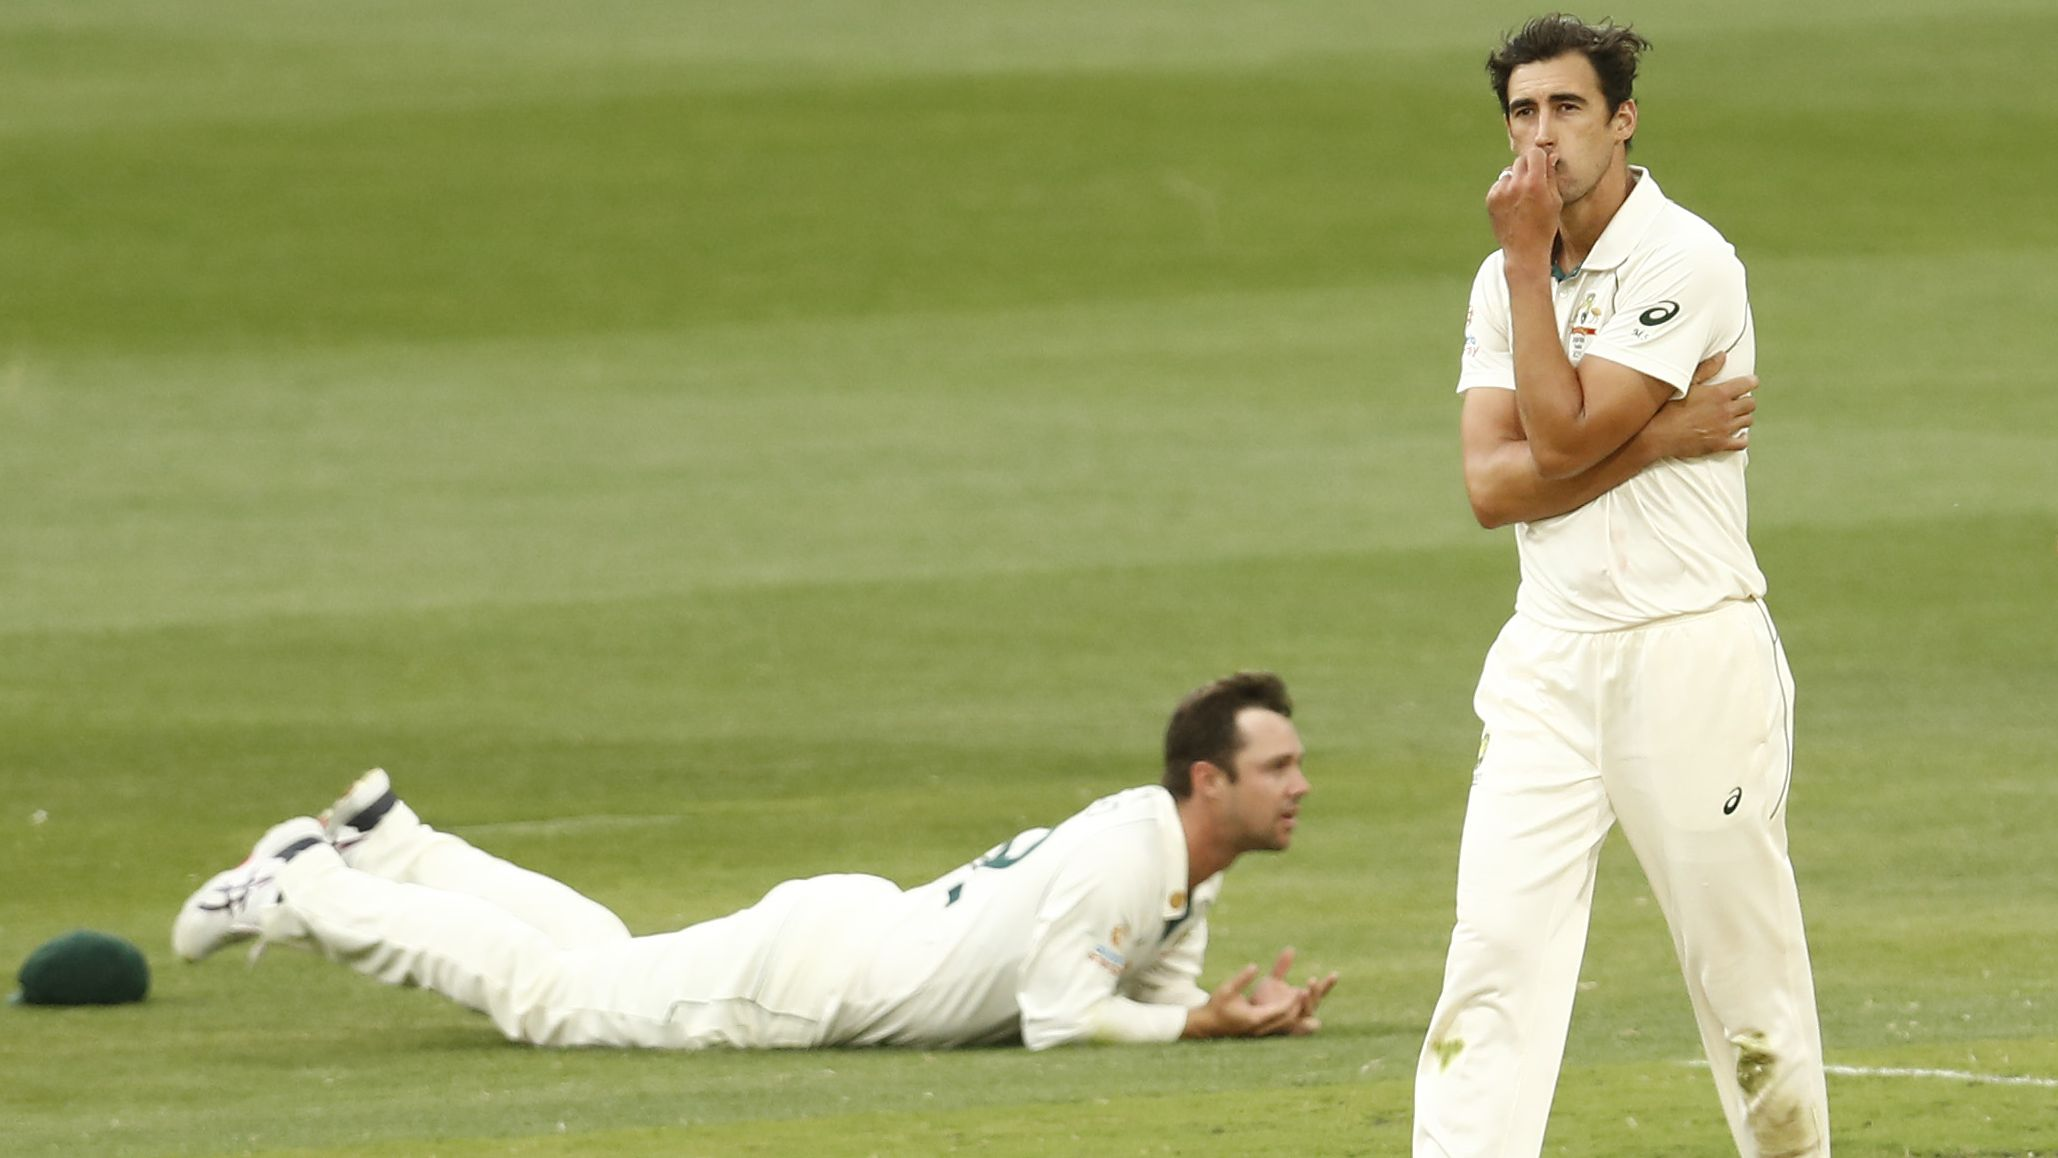 Mitchell Starc of Australia reacts after Travis Head drops a catch.